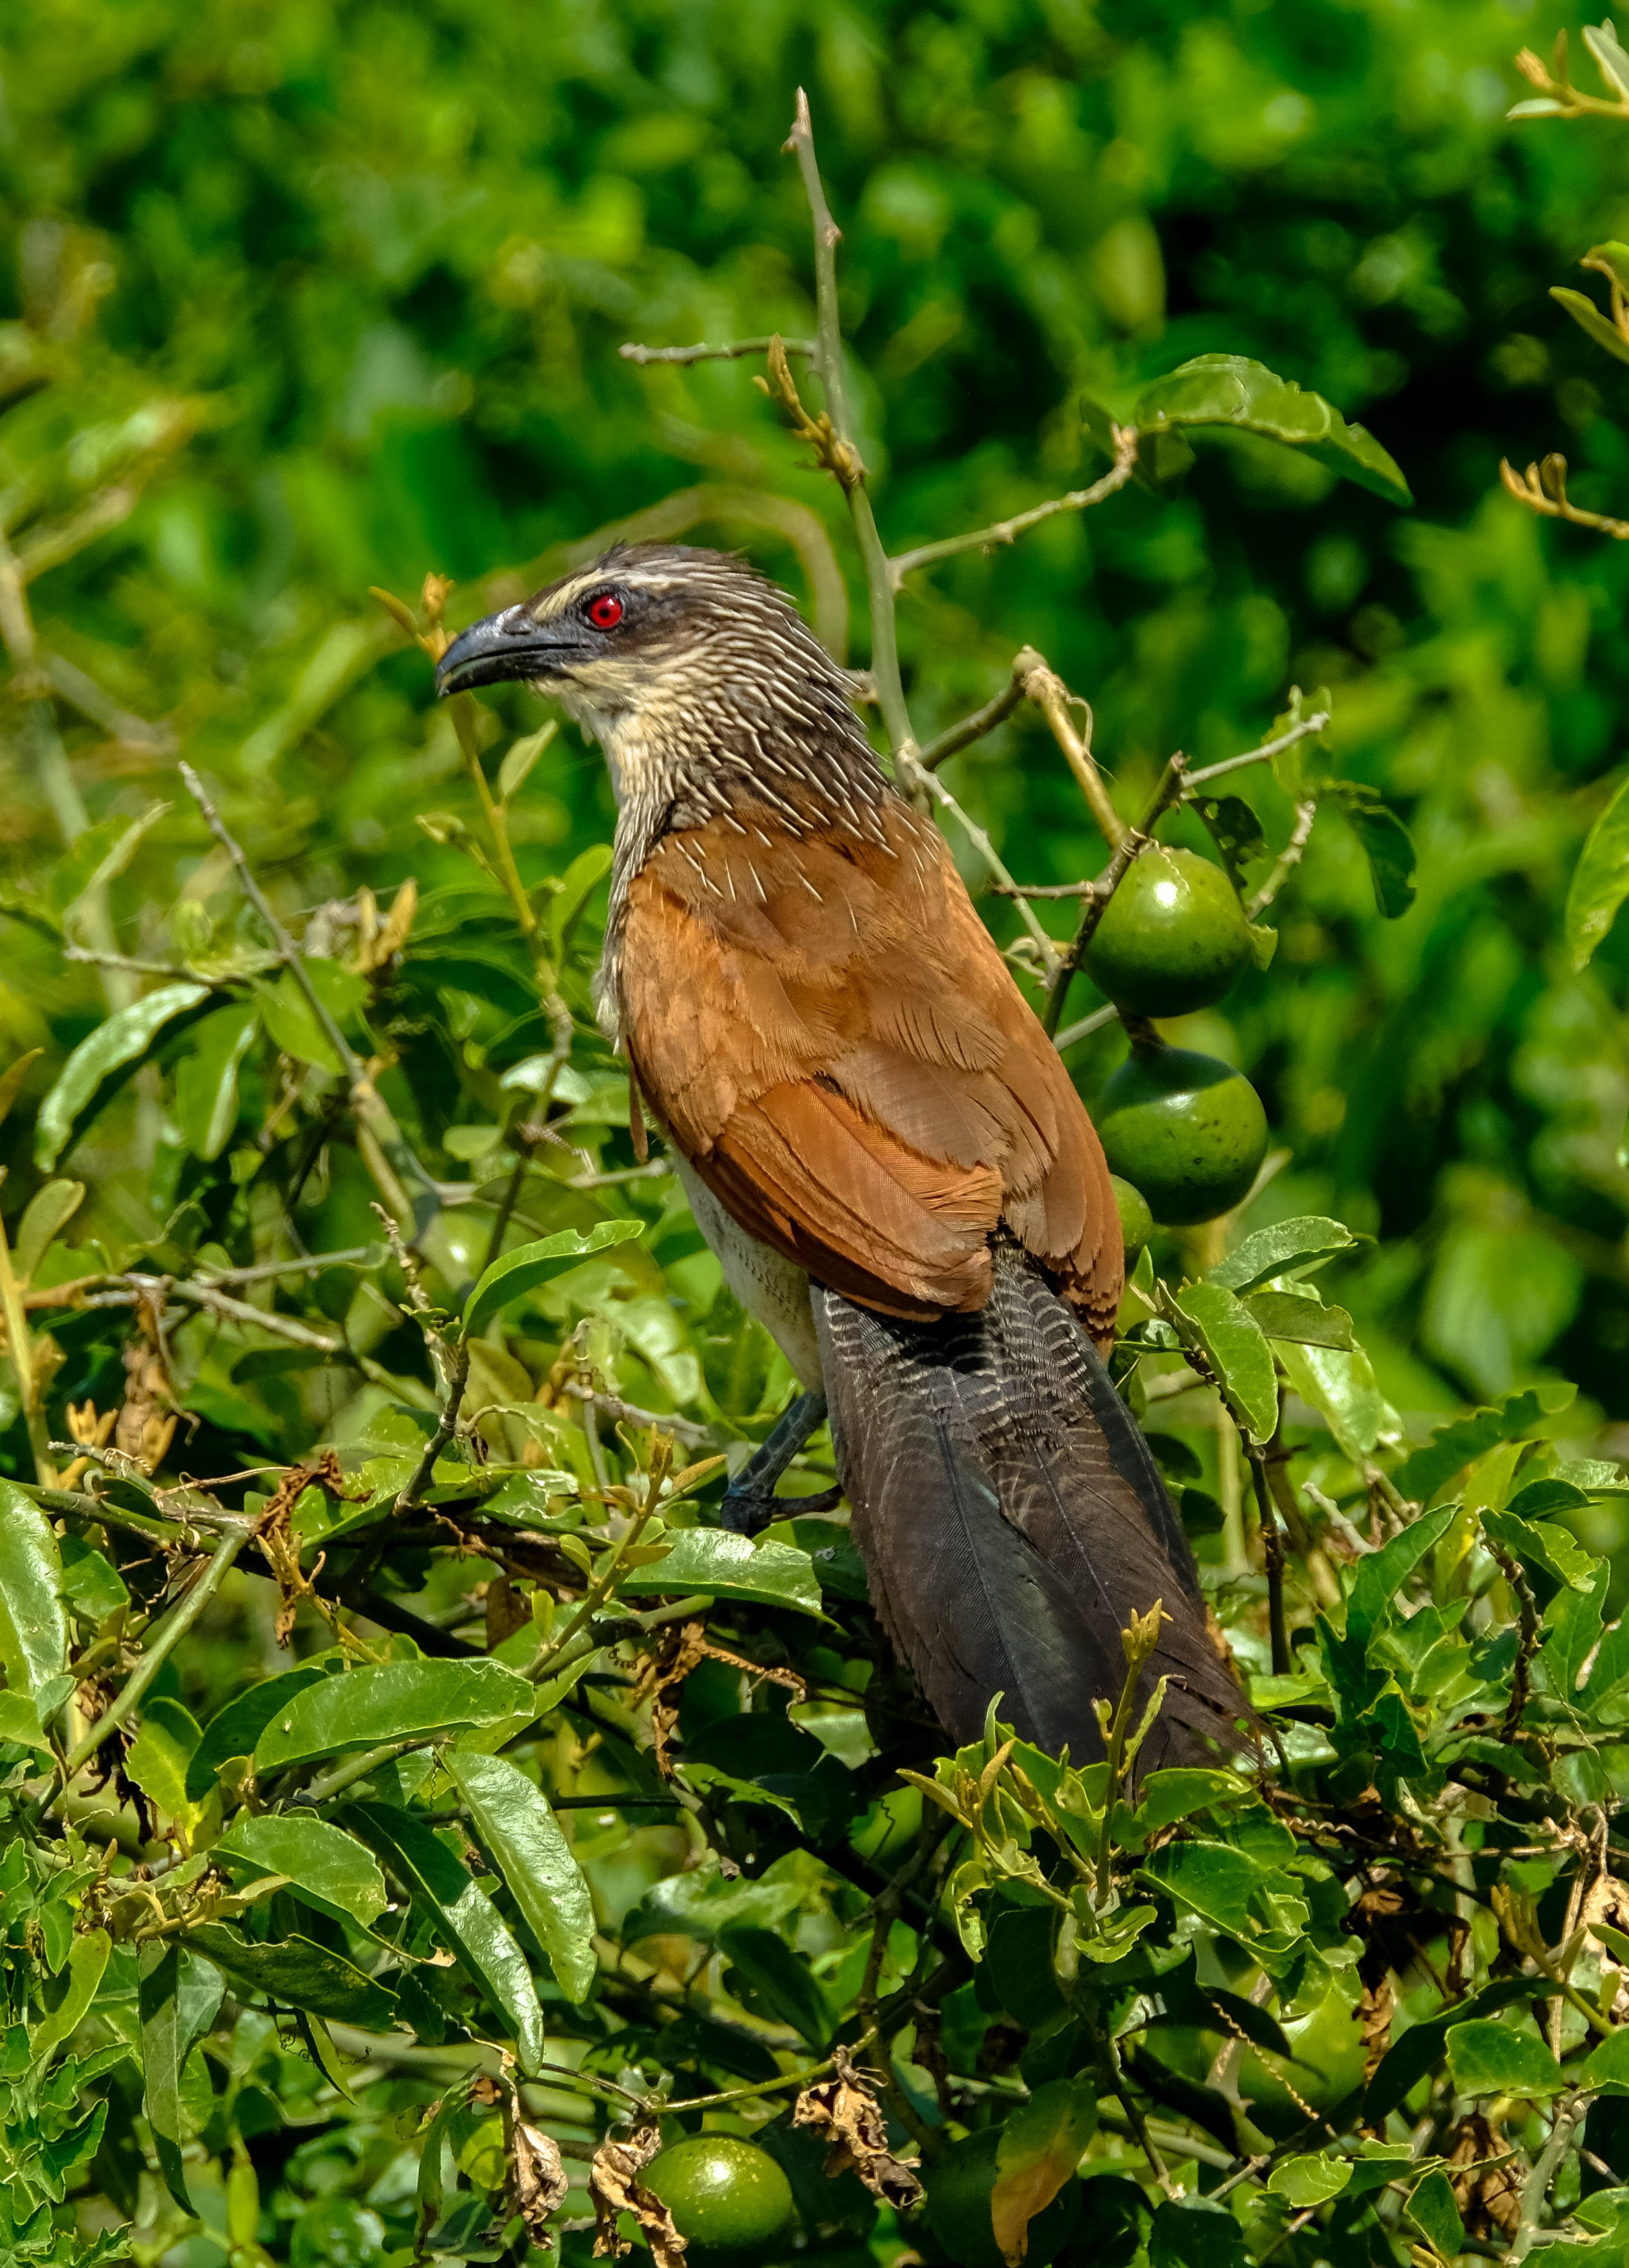 Brown Bird on Branch